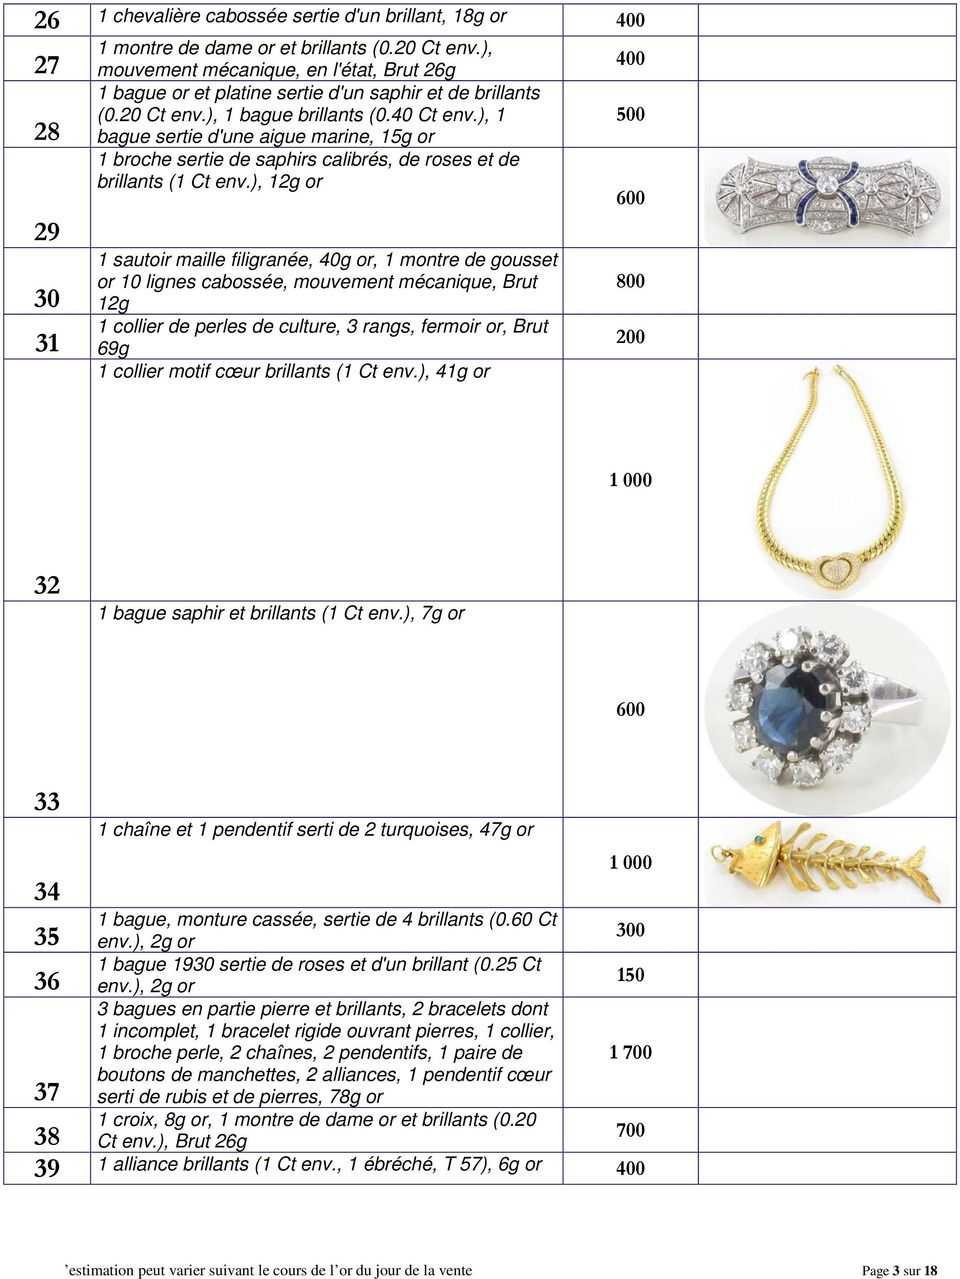 ), 1 500 bague sertie d'une aigue marine, 15g or 1 broche sertie de saphirs calibrés, de roses et de brillants (1 Ct env.